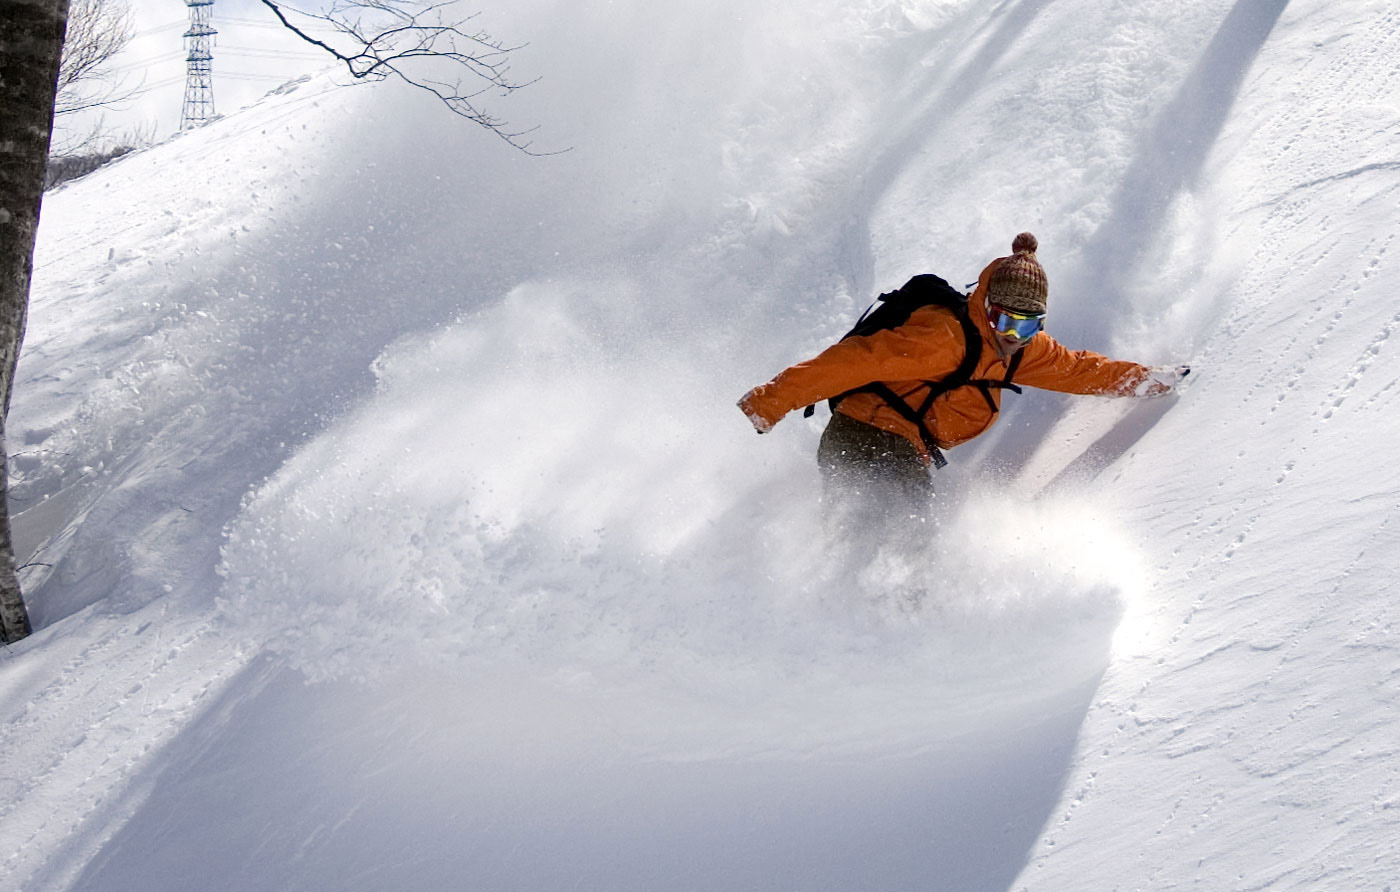 snowboarder-powder-background